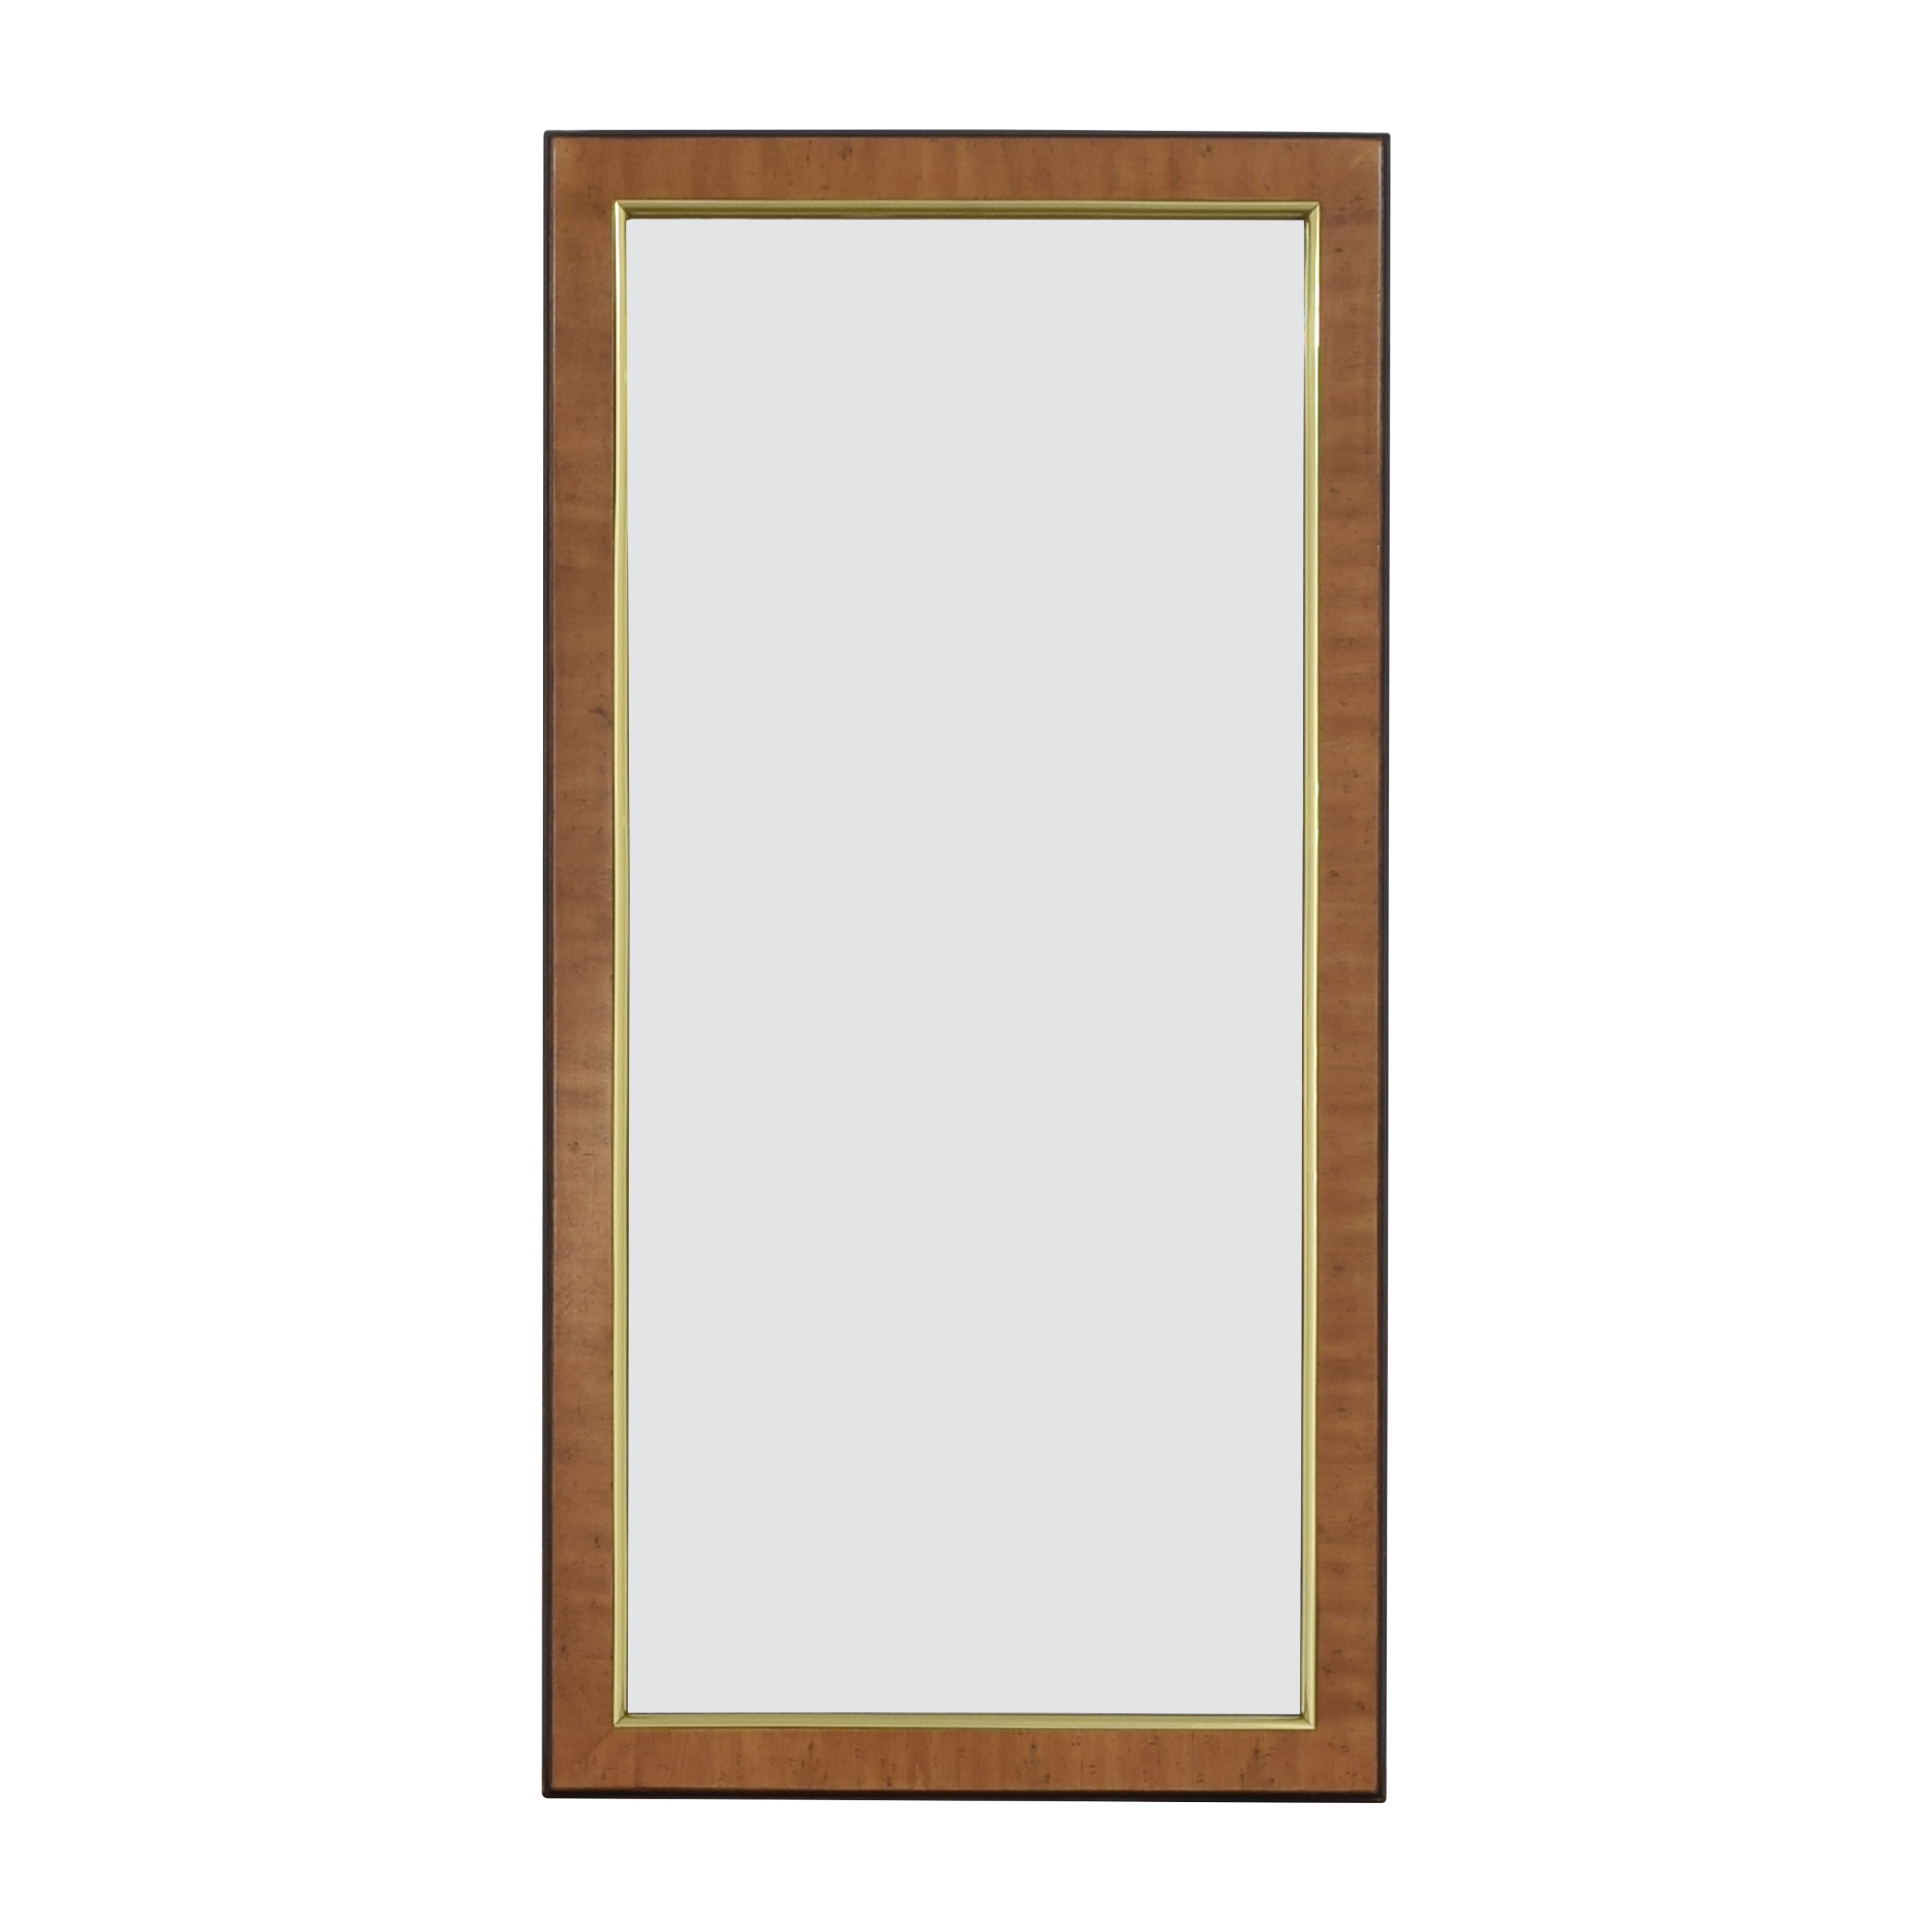 buy Drexel Heritage Drexel Heritage Avenues Collection Mirror online